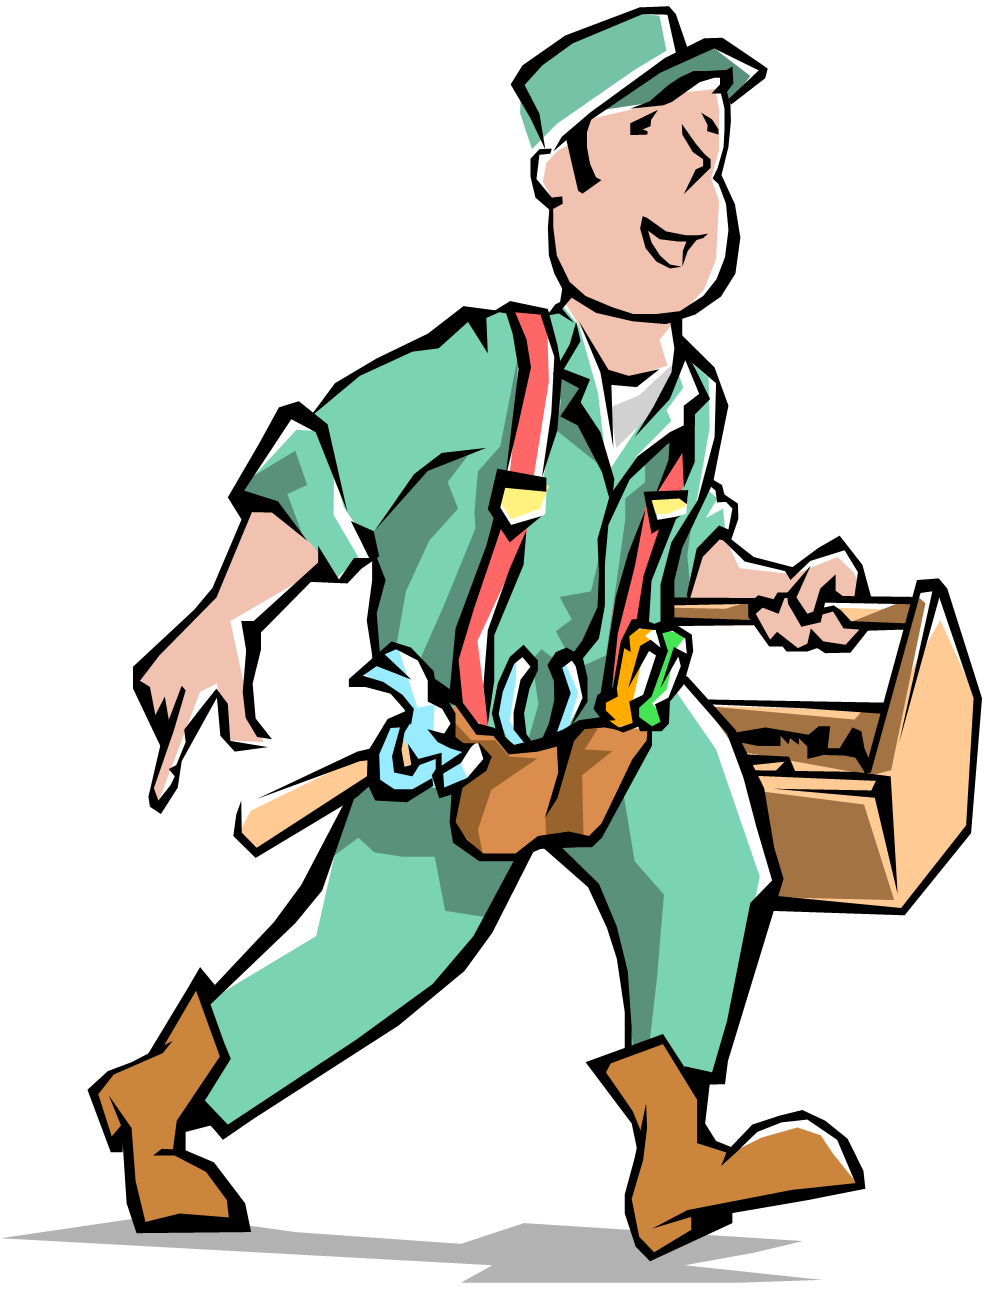 Handyman clipart pool maintenance. Engineer it support clip